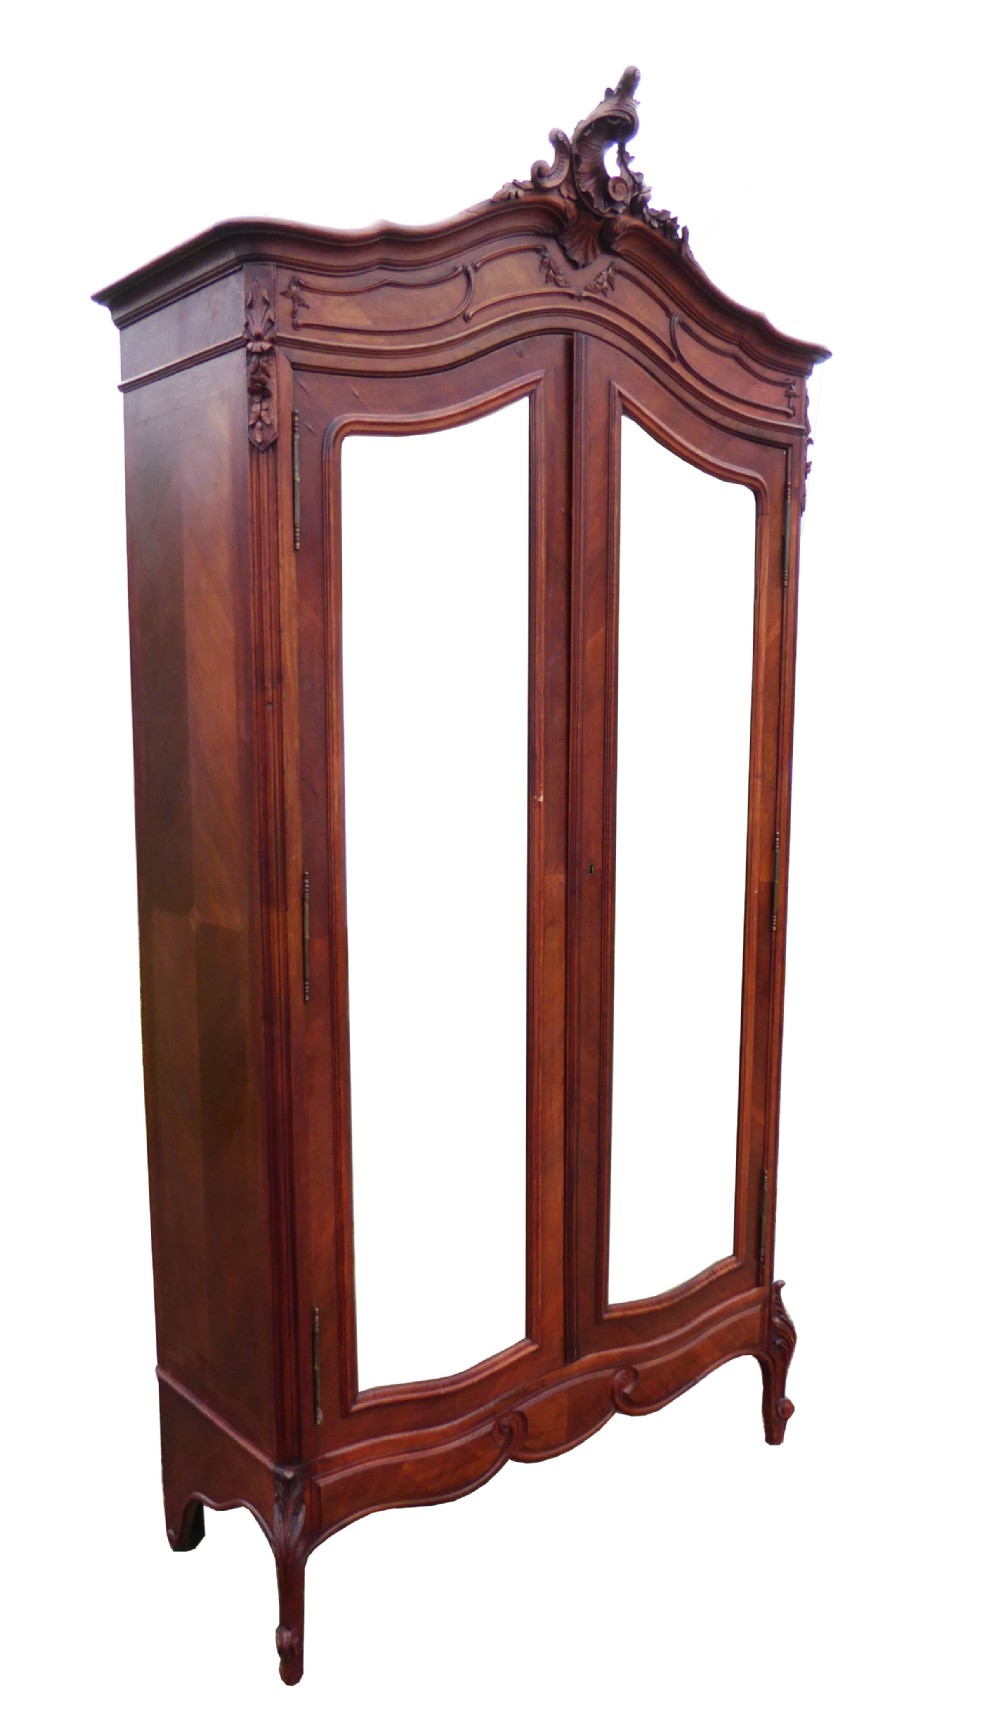 Antique French Walnut Louis Xv Style Rococo Armoire  372095  Sellingantique -> Armoire Style Baroque